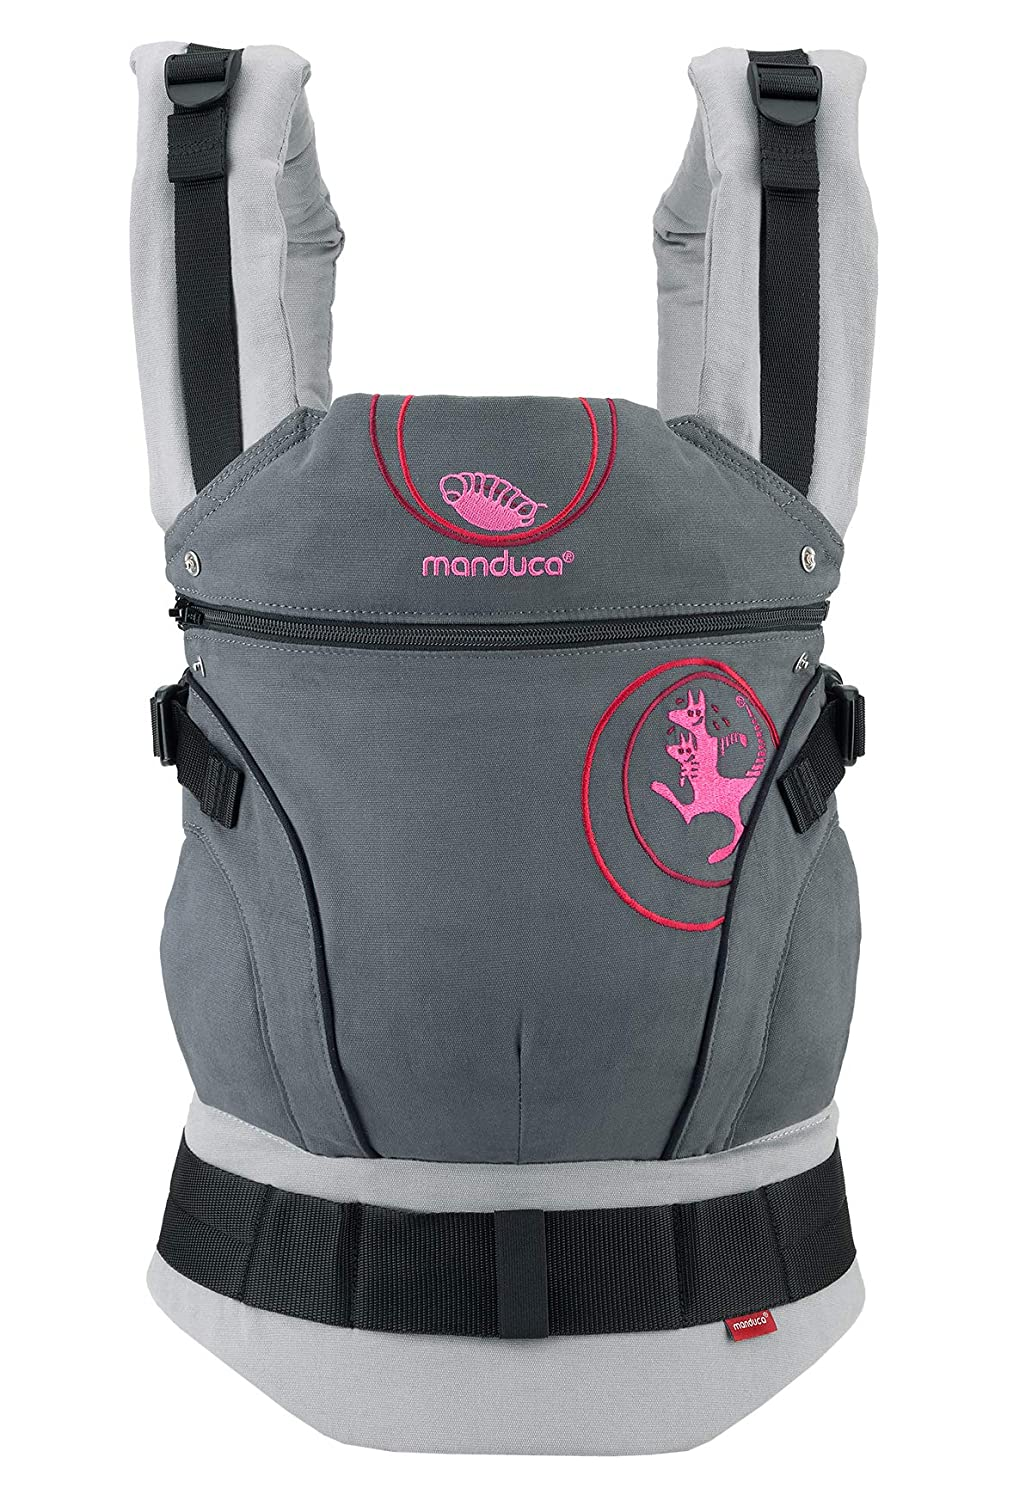 manduca First Baby Carrier > Bellybutton by manduca Edition, SoftCheck Blue < Child Carrier with Ergonomic Waist Belt & Patented Back Extension, Newborn to Toddler